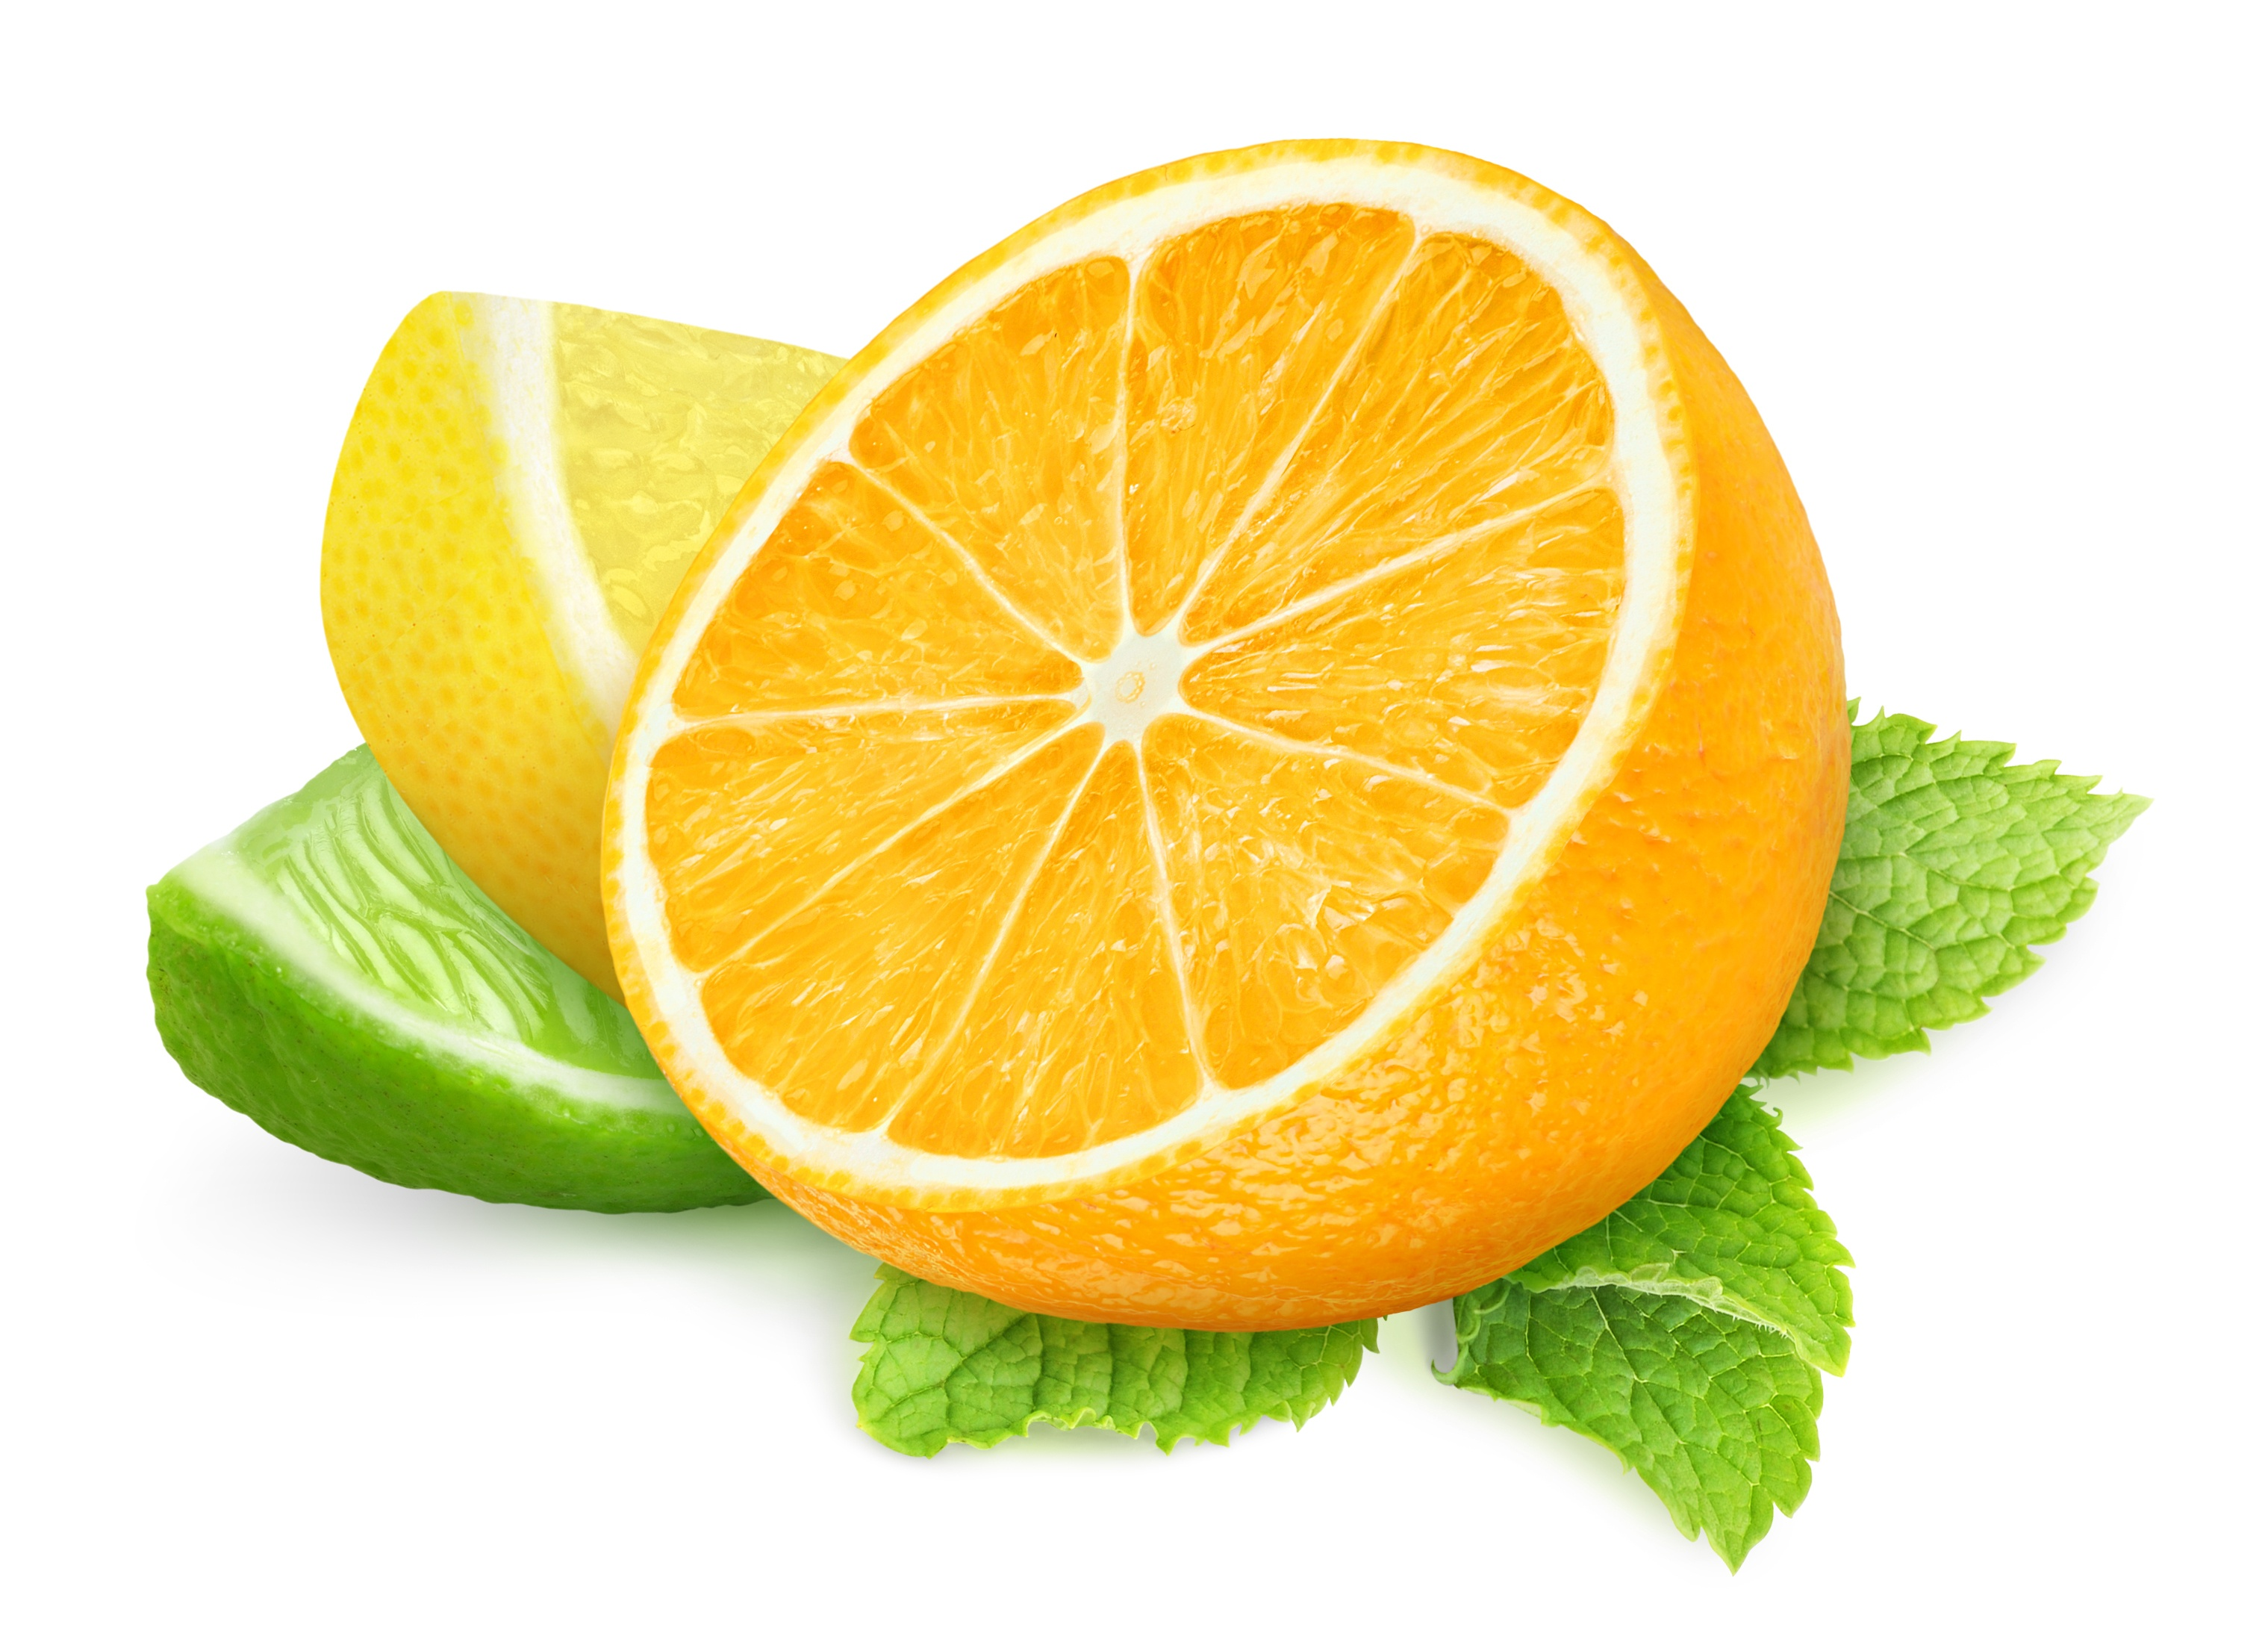 Feel energized by the scent of citrus